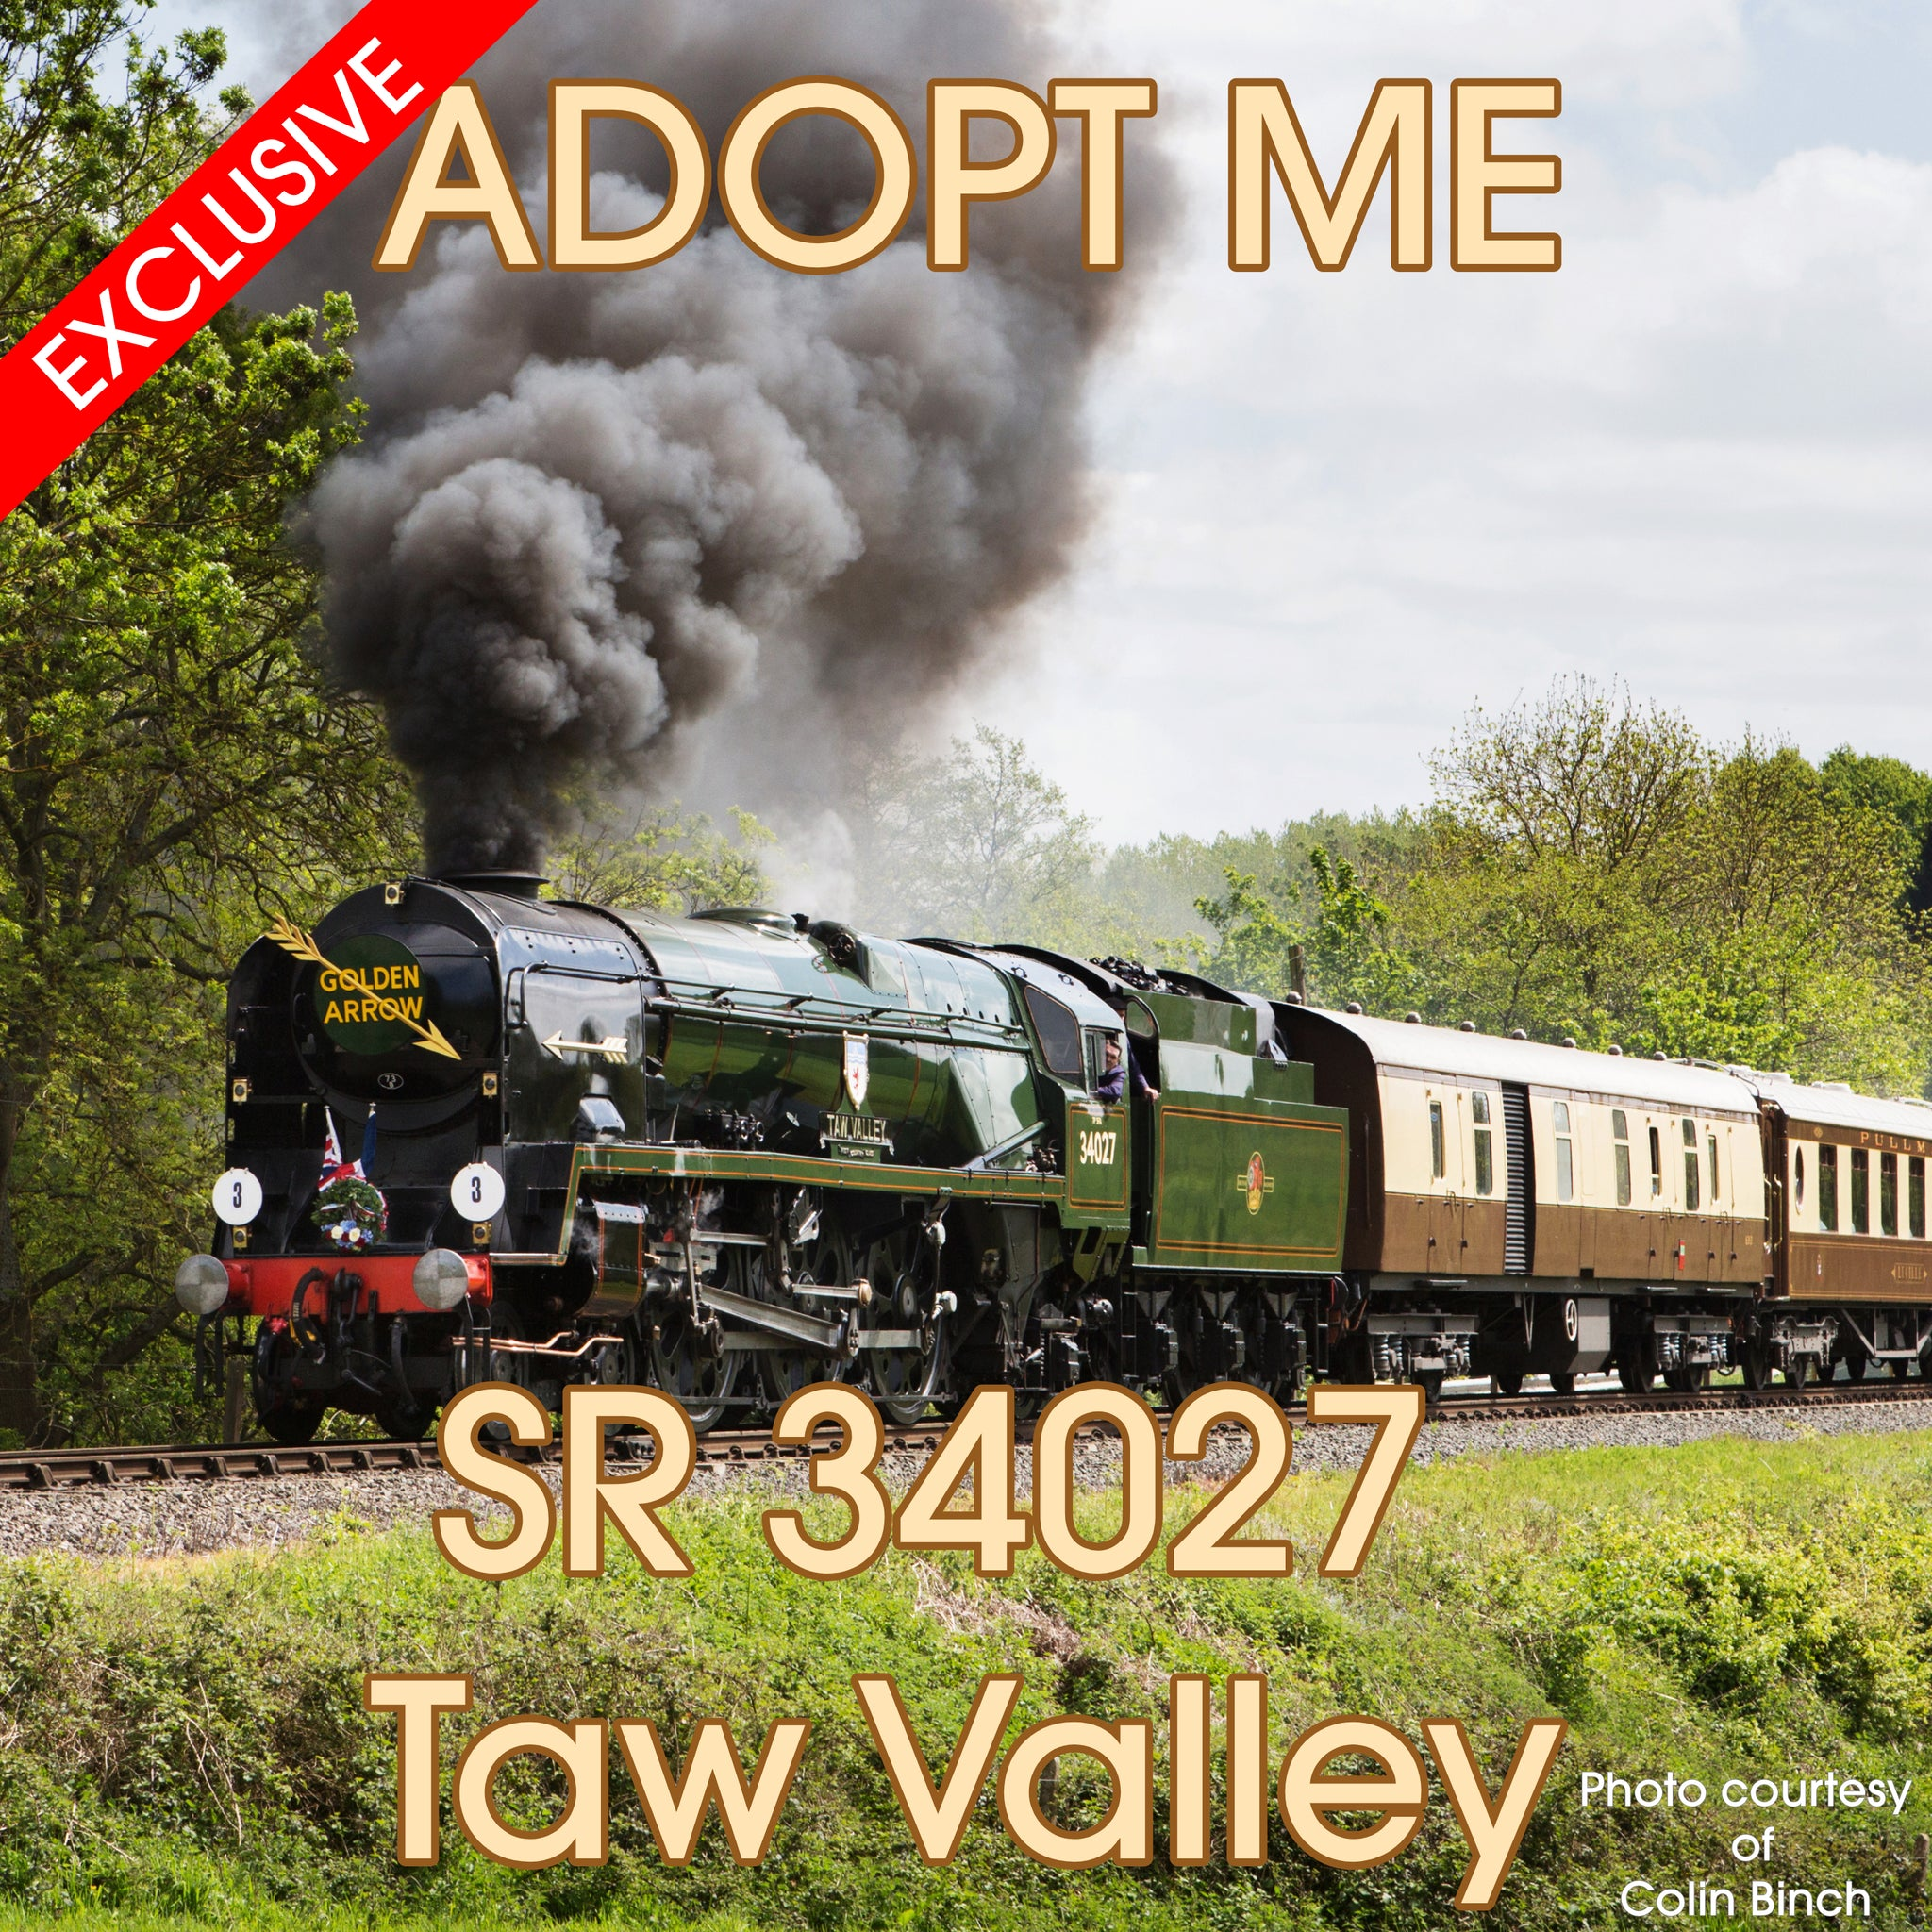 EXCLUSIVE - Adopt an Engine - SR 34027 Taw Valley